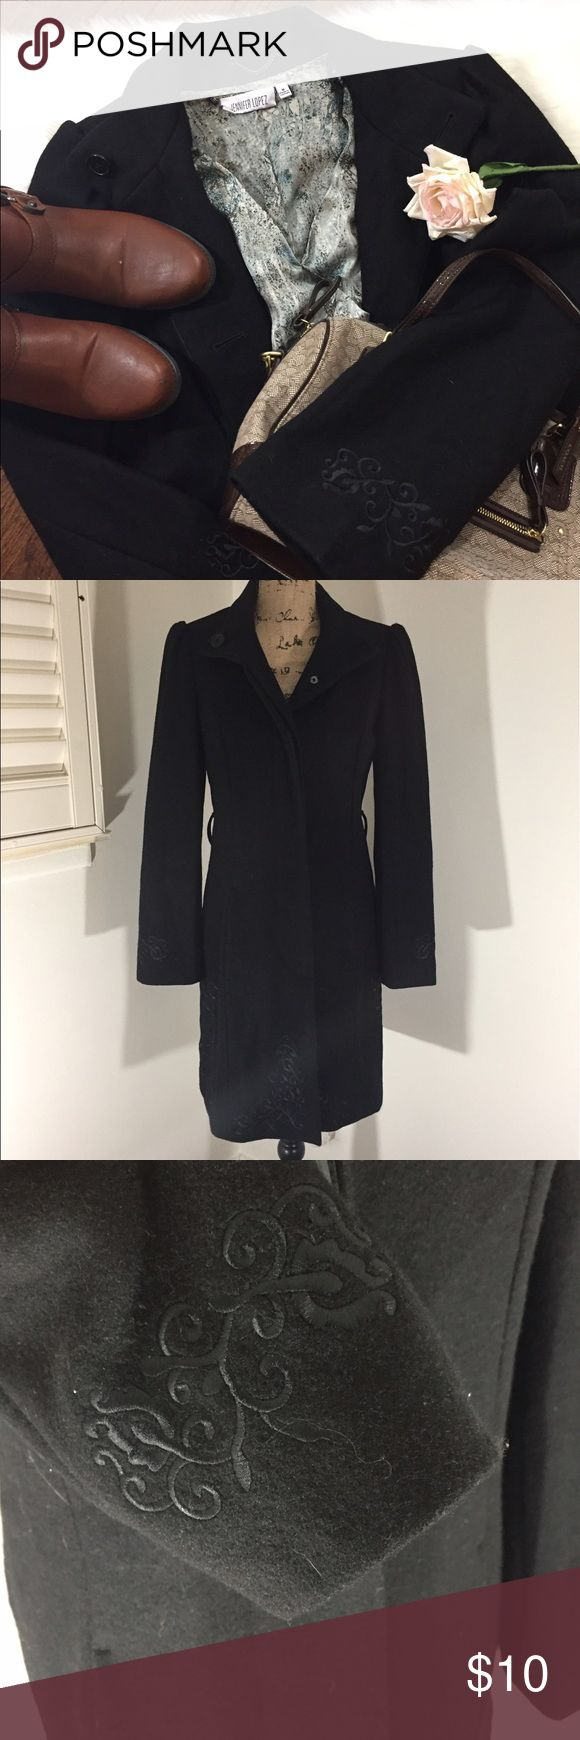 "Merona Black Pea coat Measures 35"" long, size small true to size fitted style. It is missing the (belt hence the price). Buttons down, Beautiful embroidered design on the sleeves and bottom of pea coat, no stains and one of the pockets has a rip on inside. Priced to sell!!!!!! Merona Jackets & Coats Pea Coats"